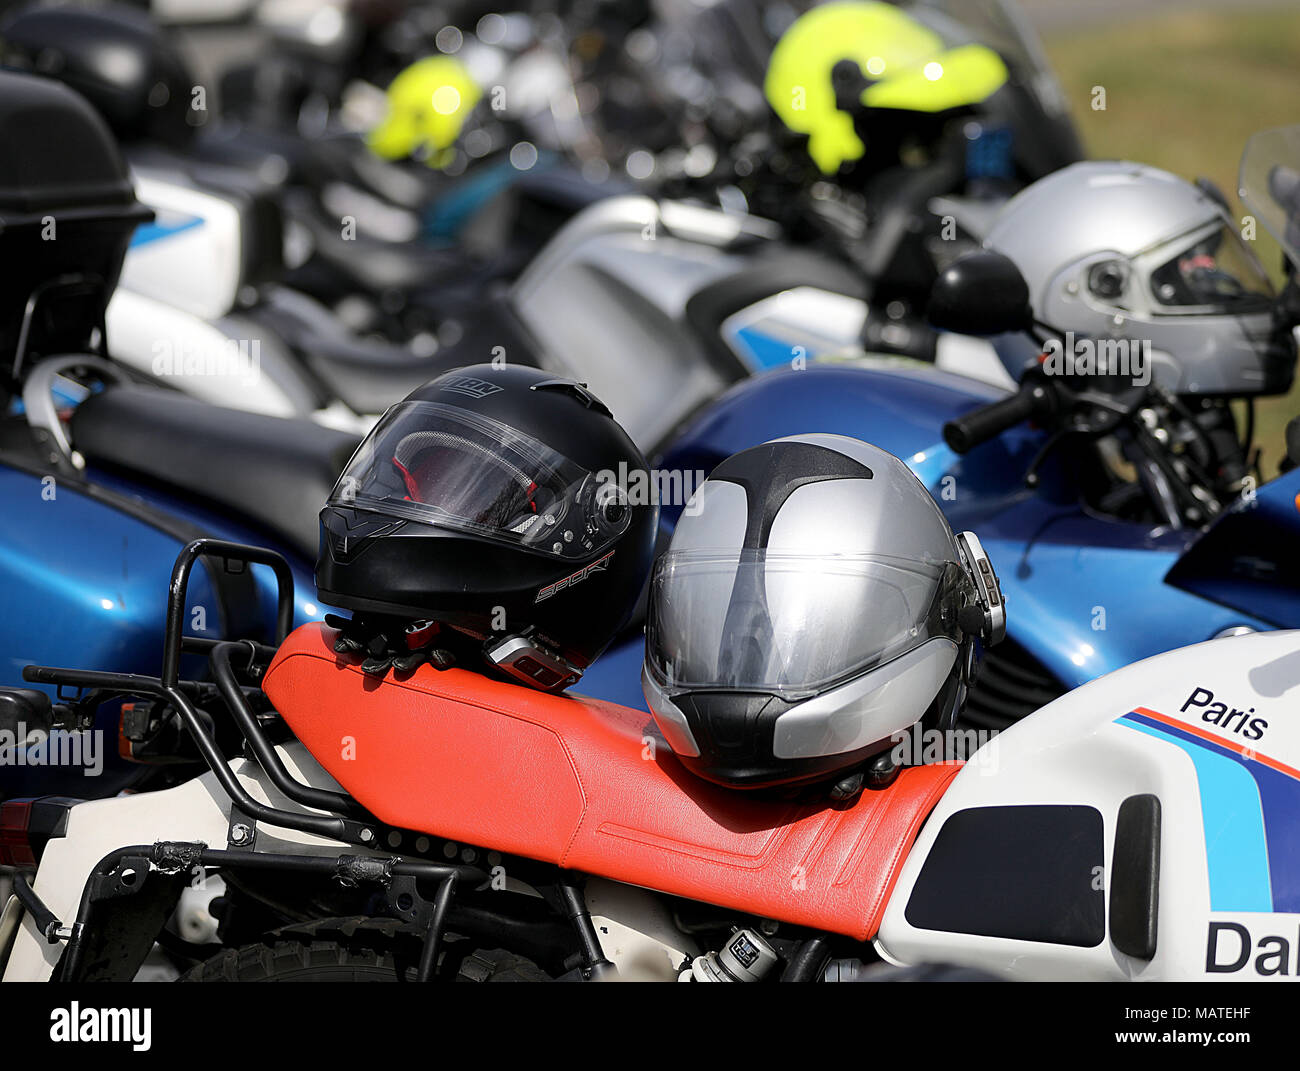 26 March 2018, Germany, Wuppertal: Motor helmets lie on top of motorcycles. North Rhine-Westphalia's Interior Minister Herbert Reul of the Christian Democratic Union (CDU) promotes greater safety measures at the beginning of the motorcycling season. Photo: Oliver Berg/dpa - Stock Image